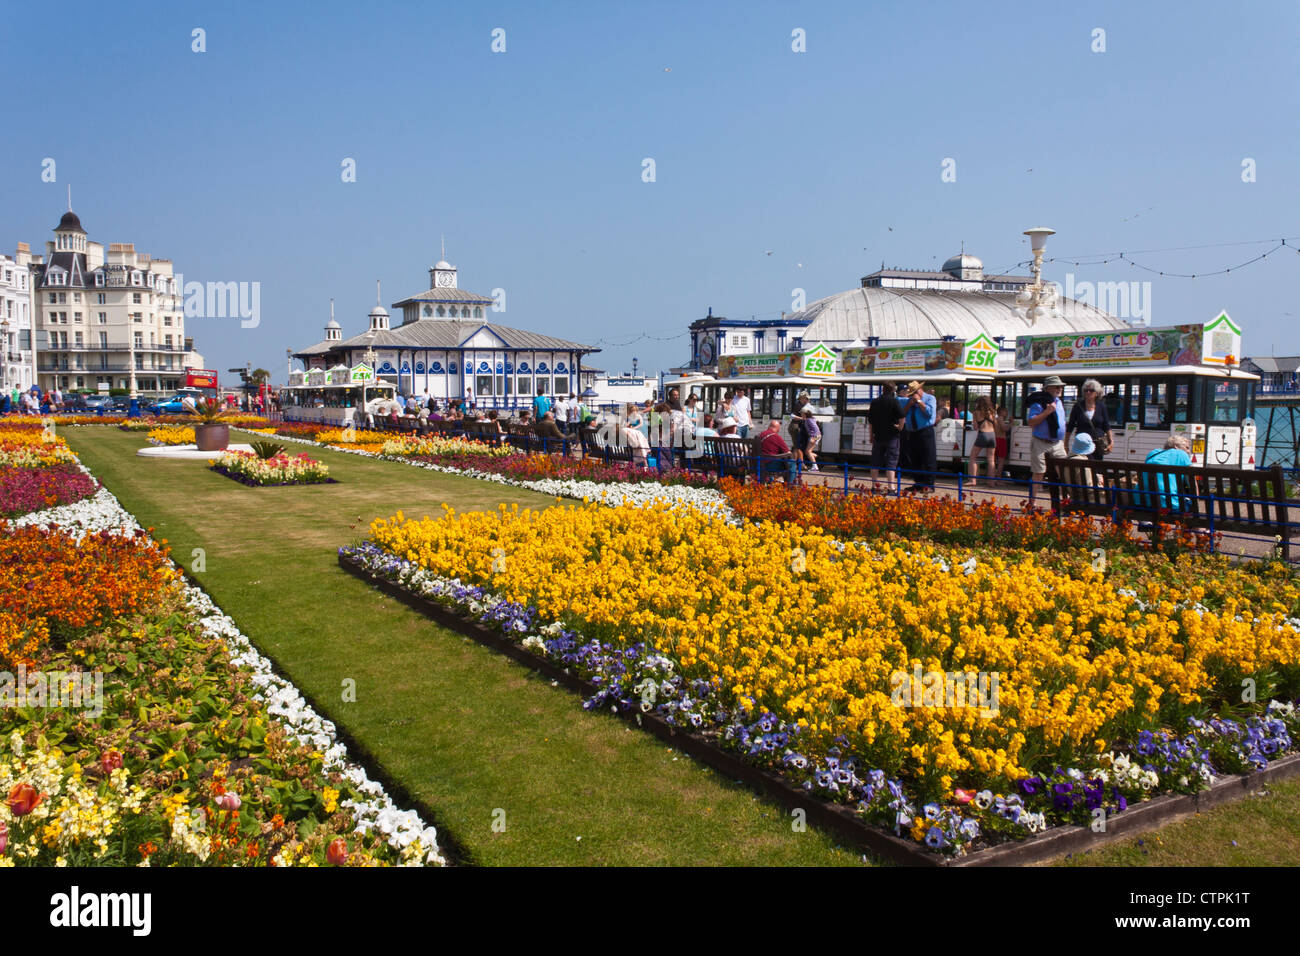 Floral display on the promenade at Eastbourne, an English seaside holiday destination, Sussex, England, GB, UK. - Stock Image